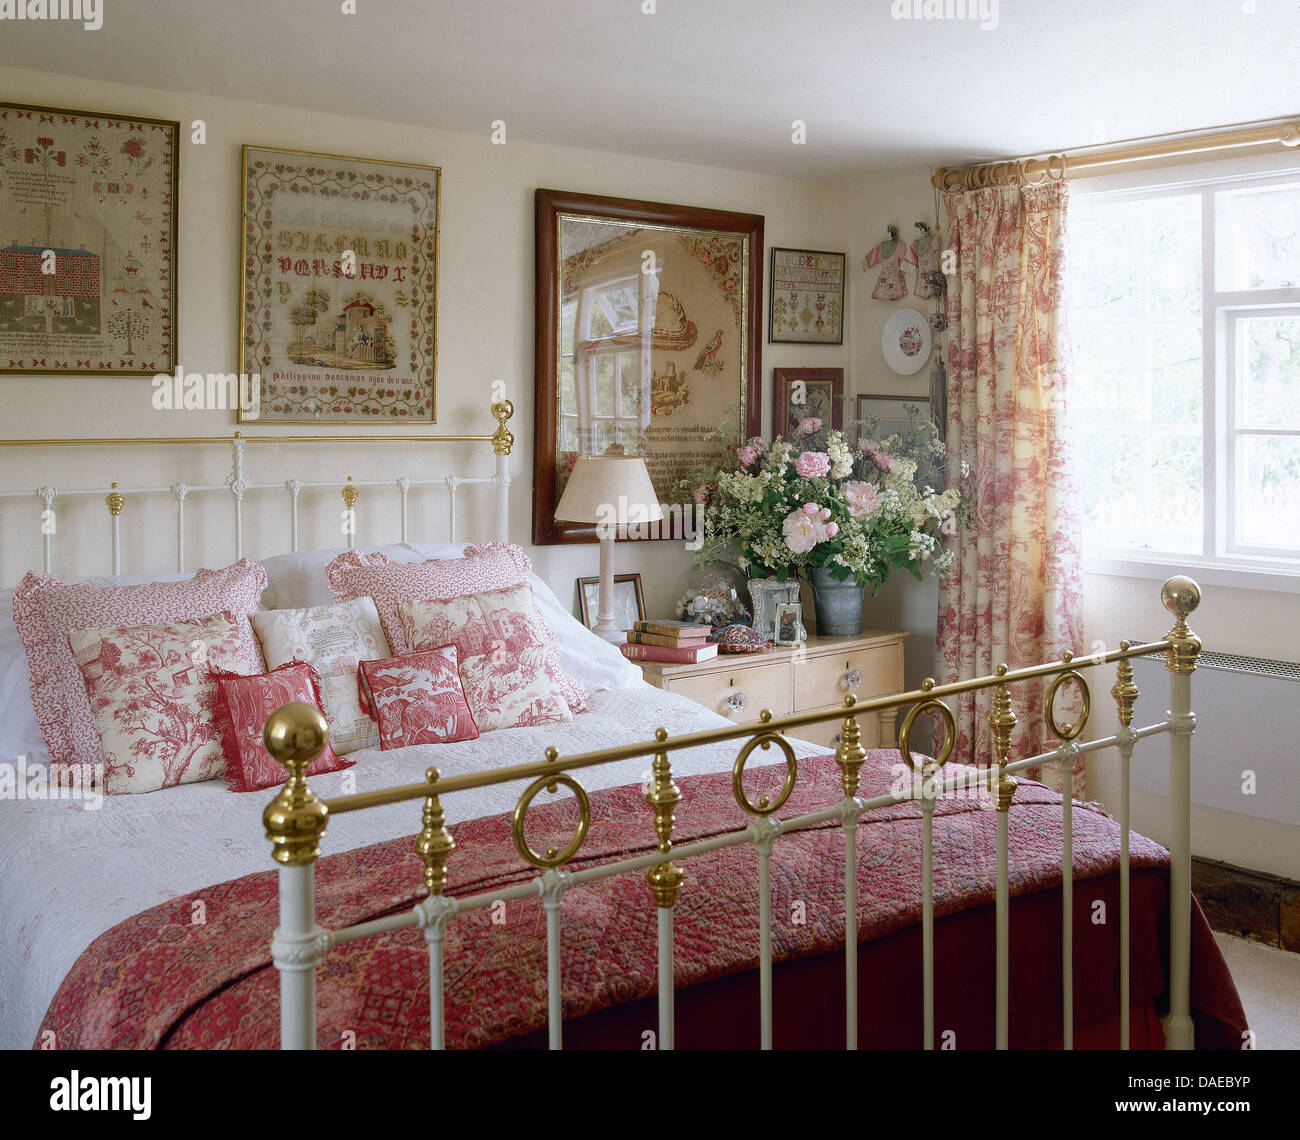 antique brass bed. Antique Samplers On Wall Above Brass Bed With Pink Quilt And Cushions In Cottage Bedroom Toile De Jouy Drapes